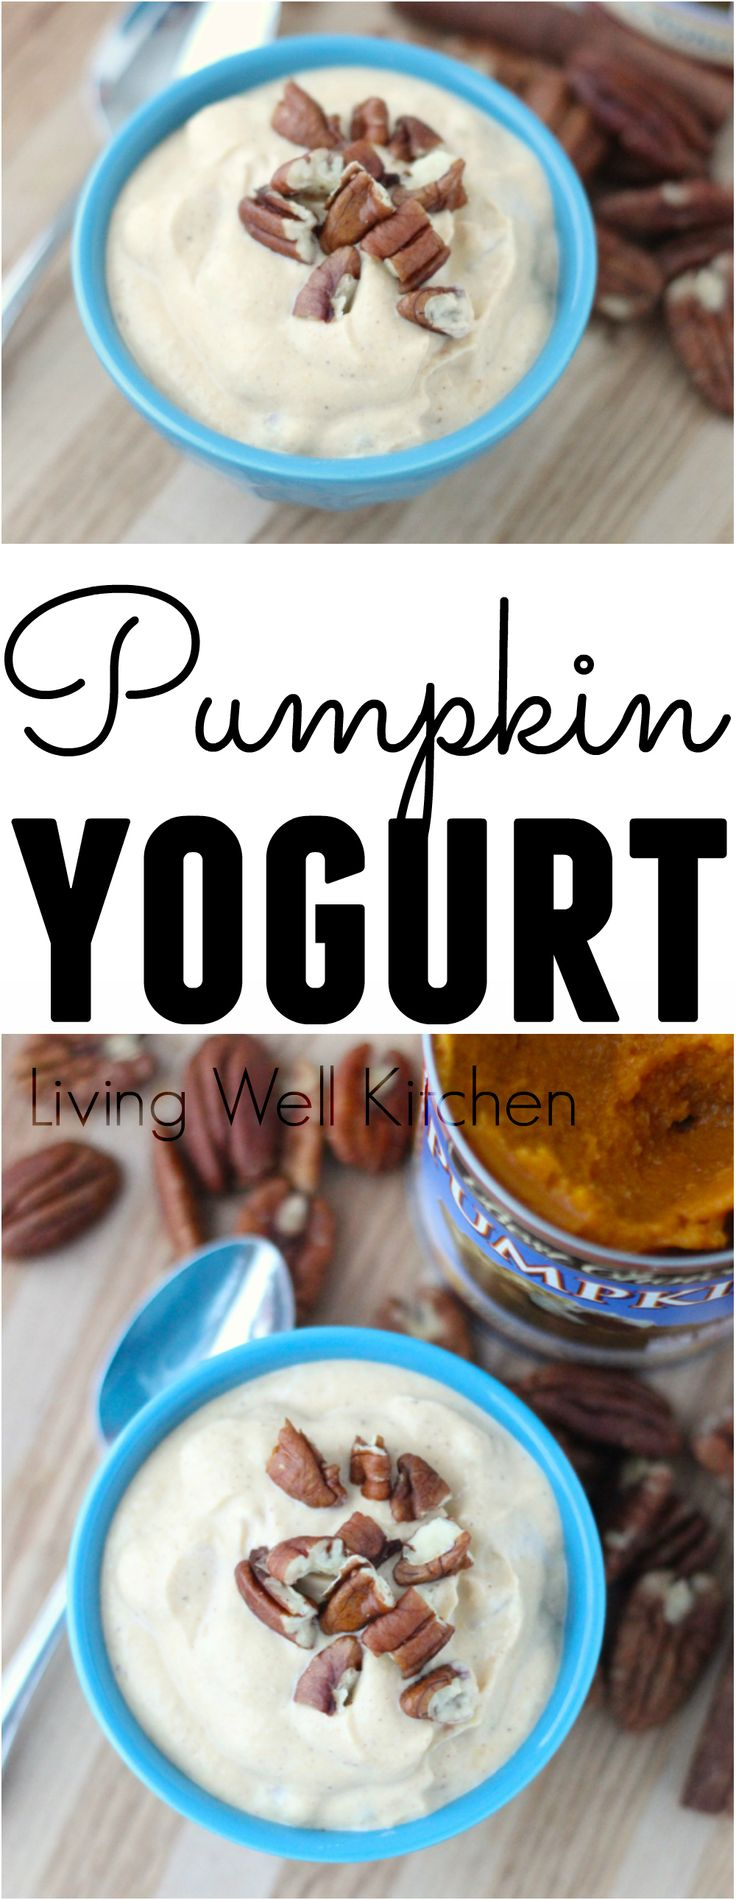 Pumpkin Yogurt from @memeinge is easy to make, low in added sugar, and high in lean protein and healthy fat. Great recipe for breakfast and also perfect as an afternoon snack